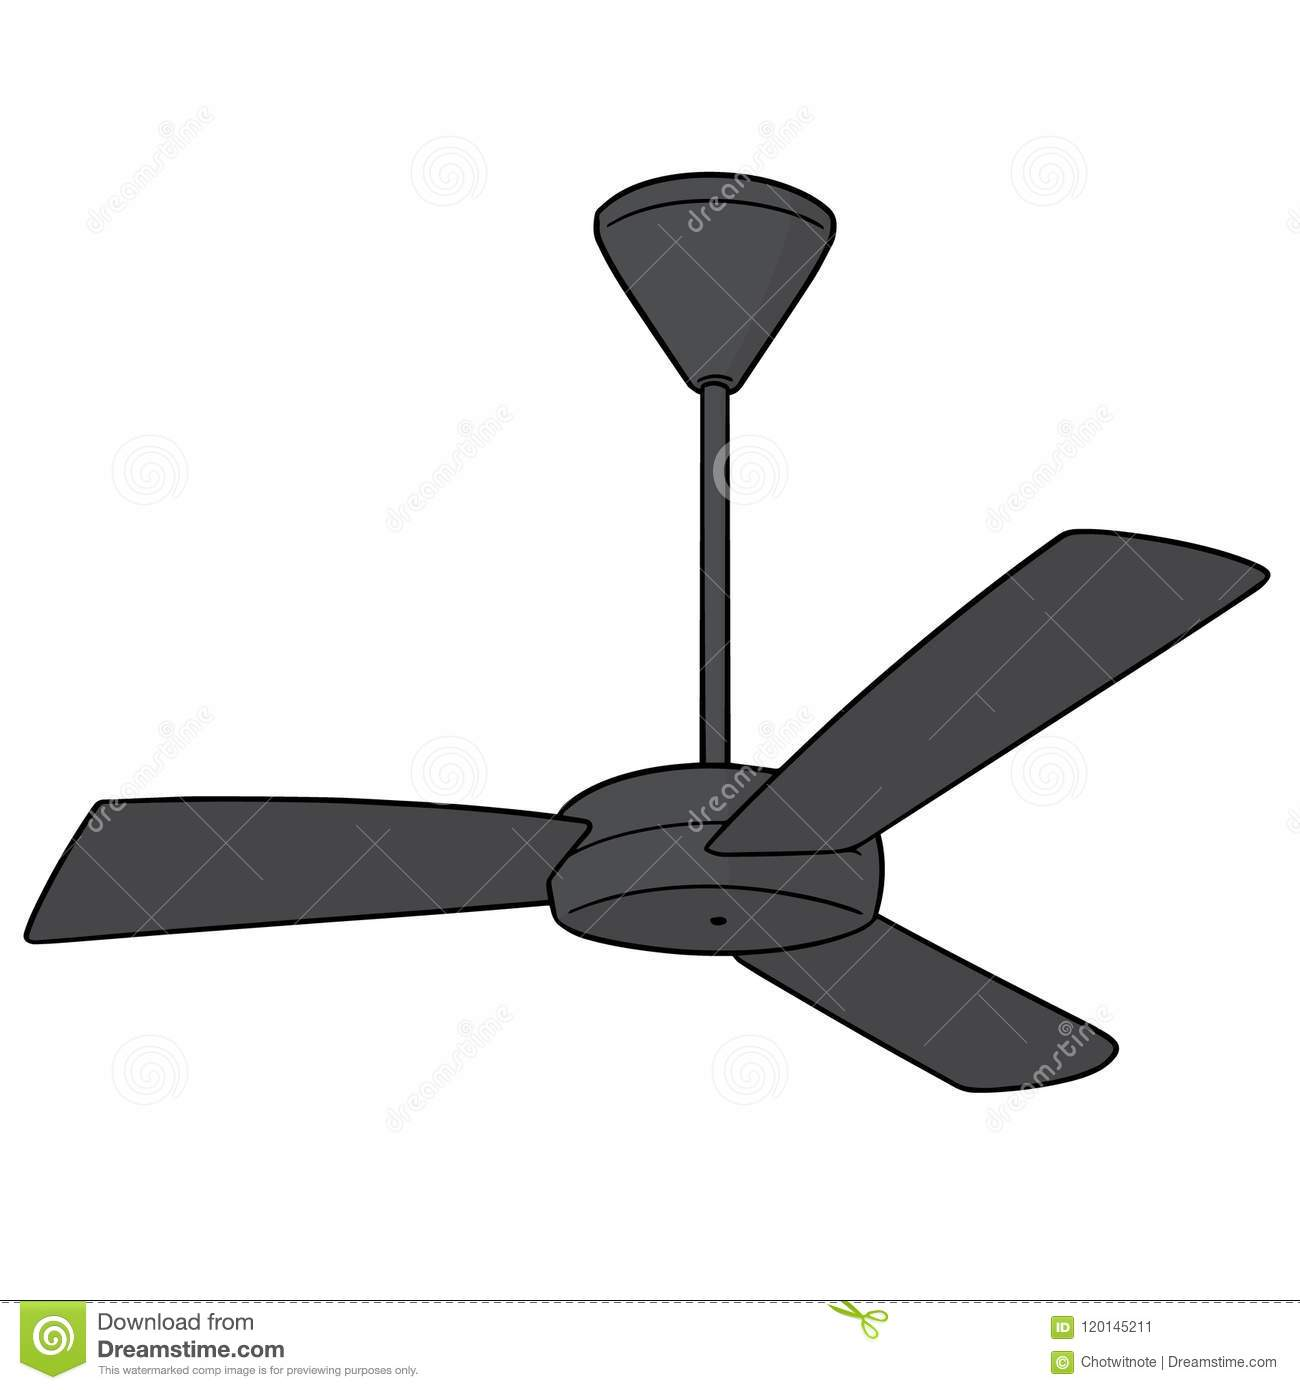 Vector of ceiling fan stock vector. Illustration of clipart.